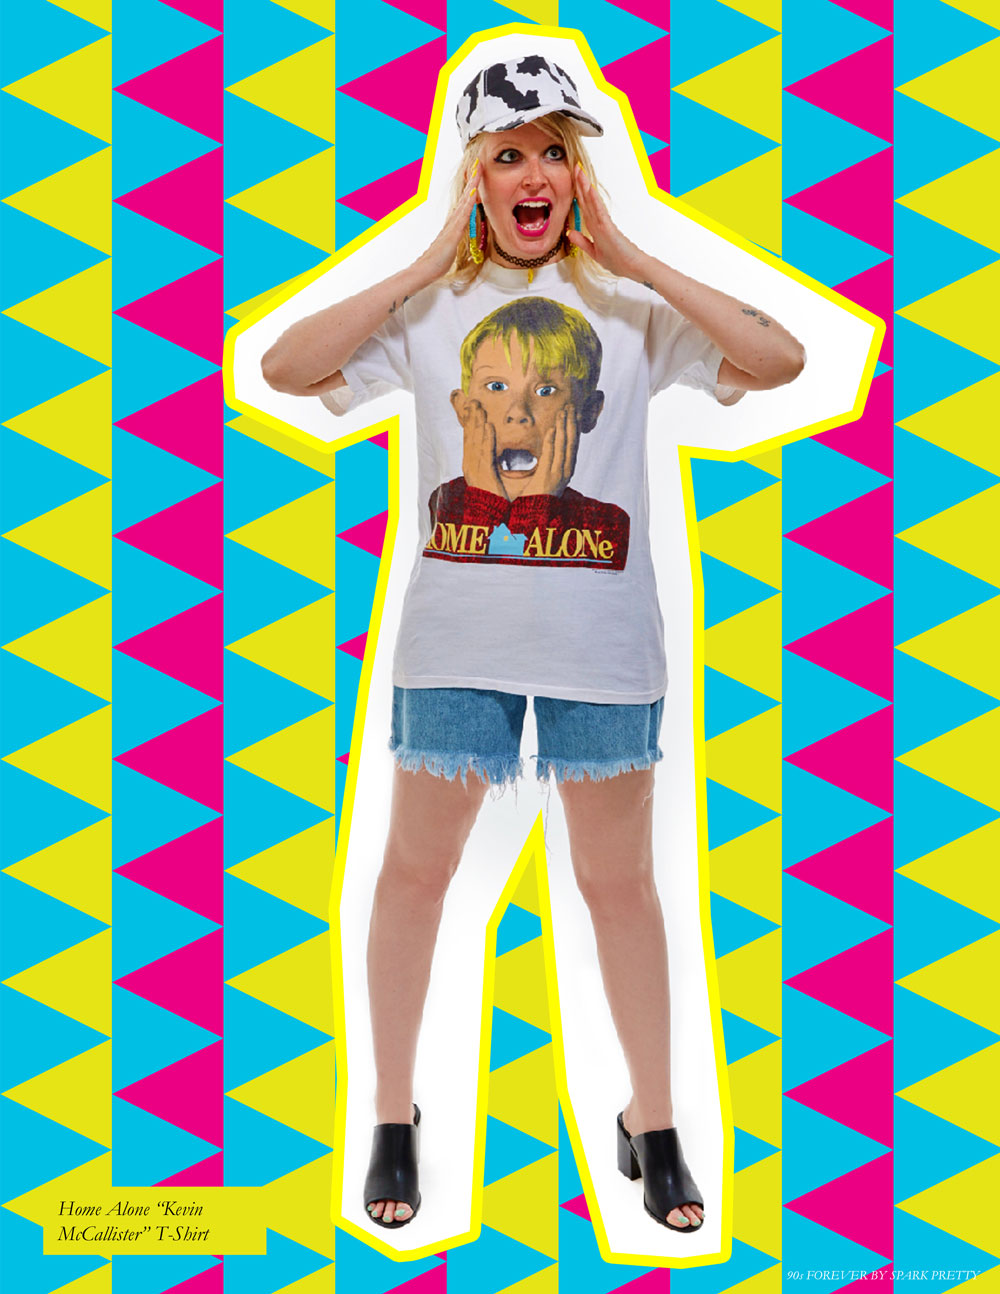 90s Forever Retro Vintage Fashion Apparel Lookbook - Home Alone T Shirt